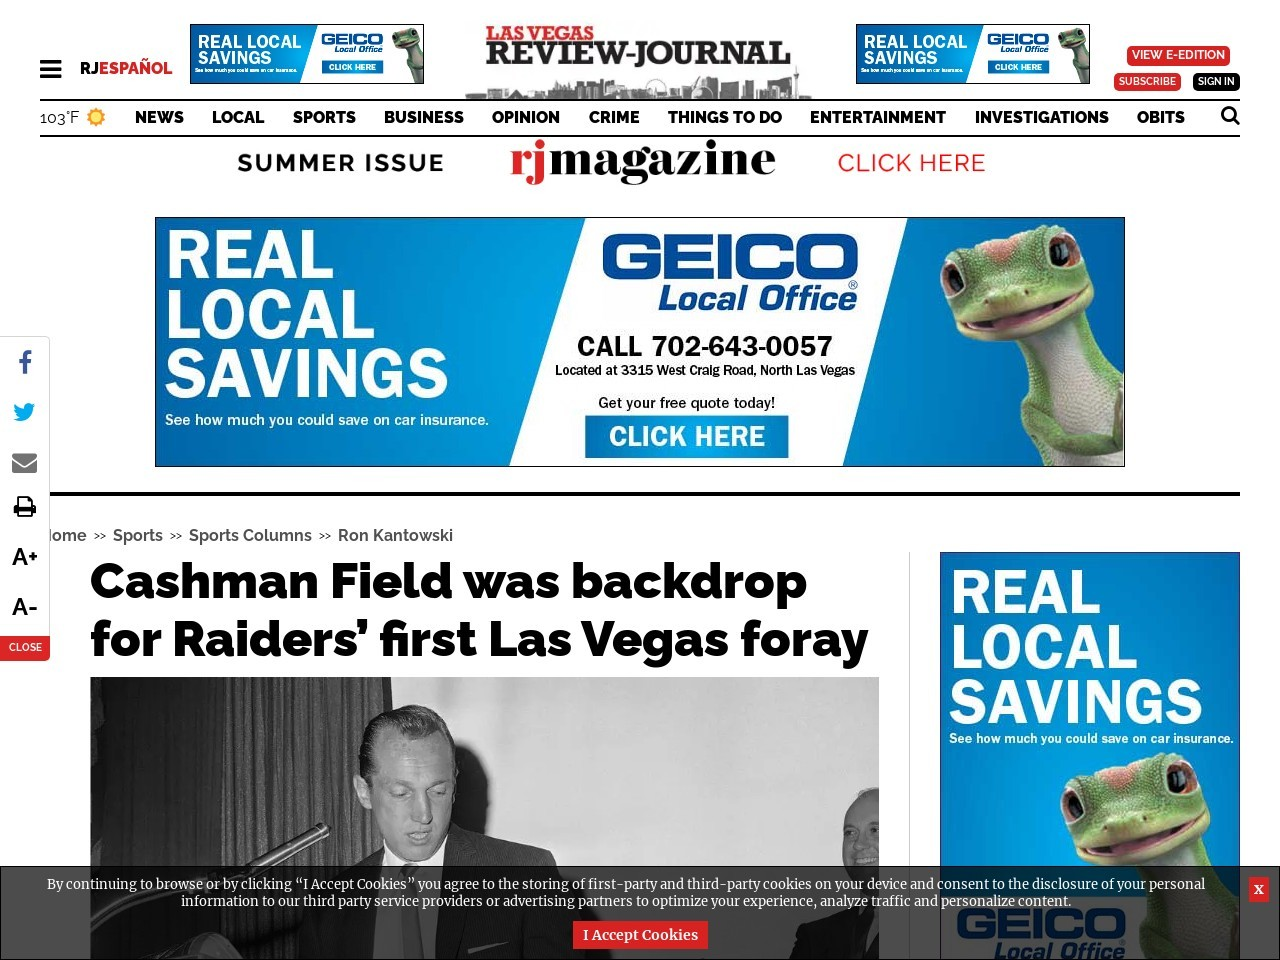 Cashman Field was backdrop for Raiders' first Las Vegas foray